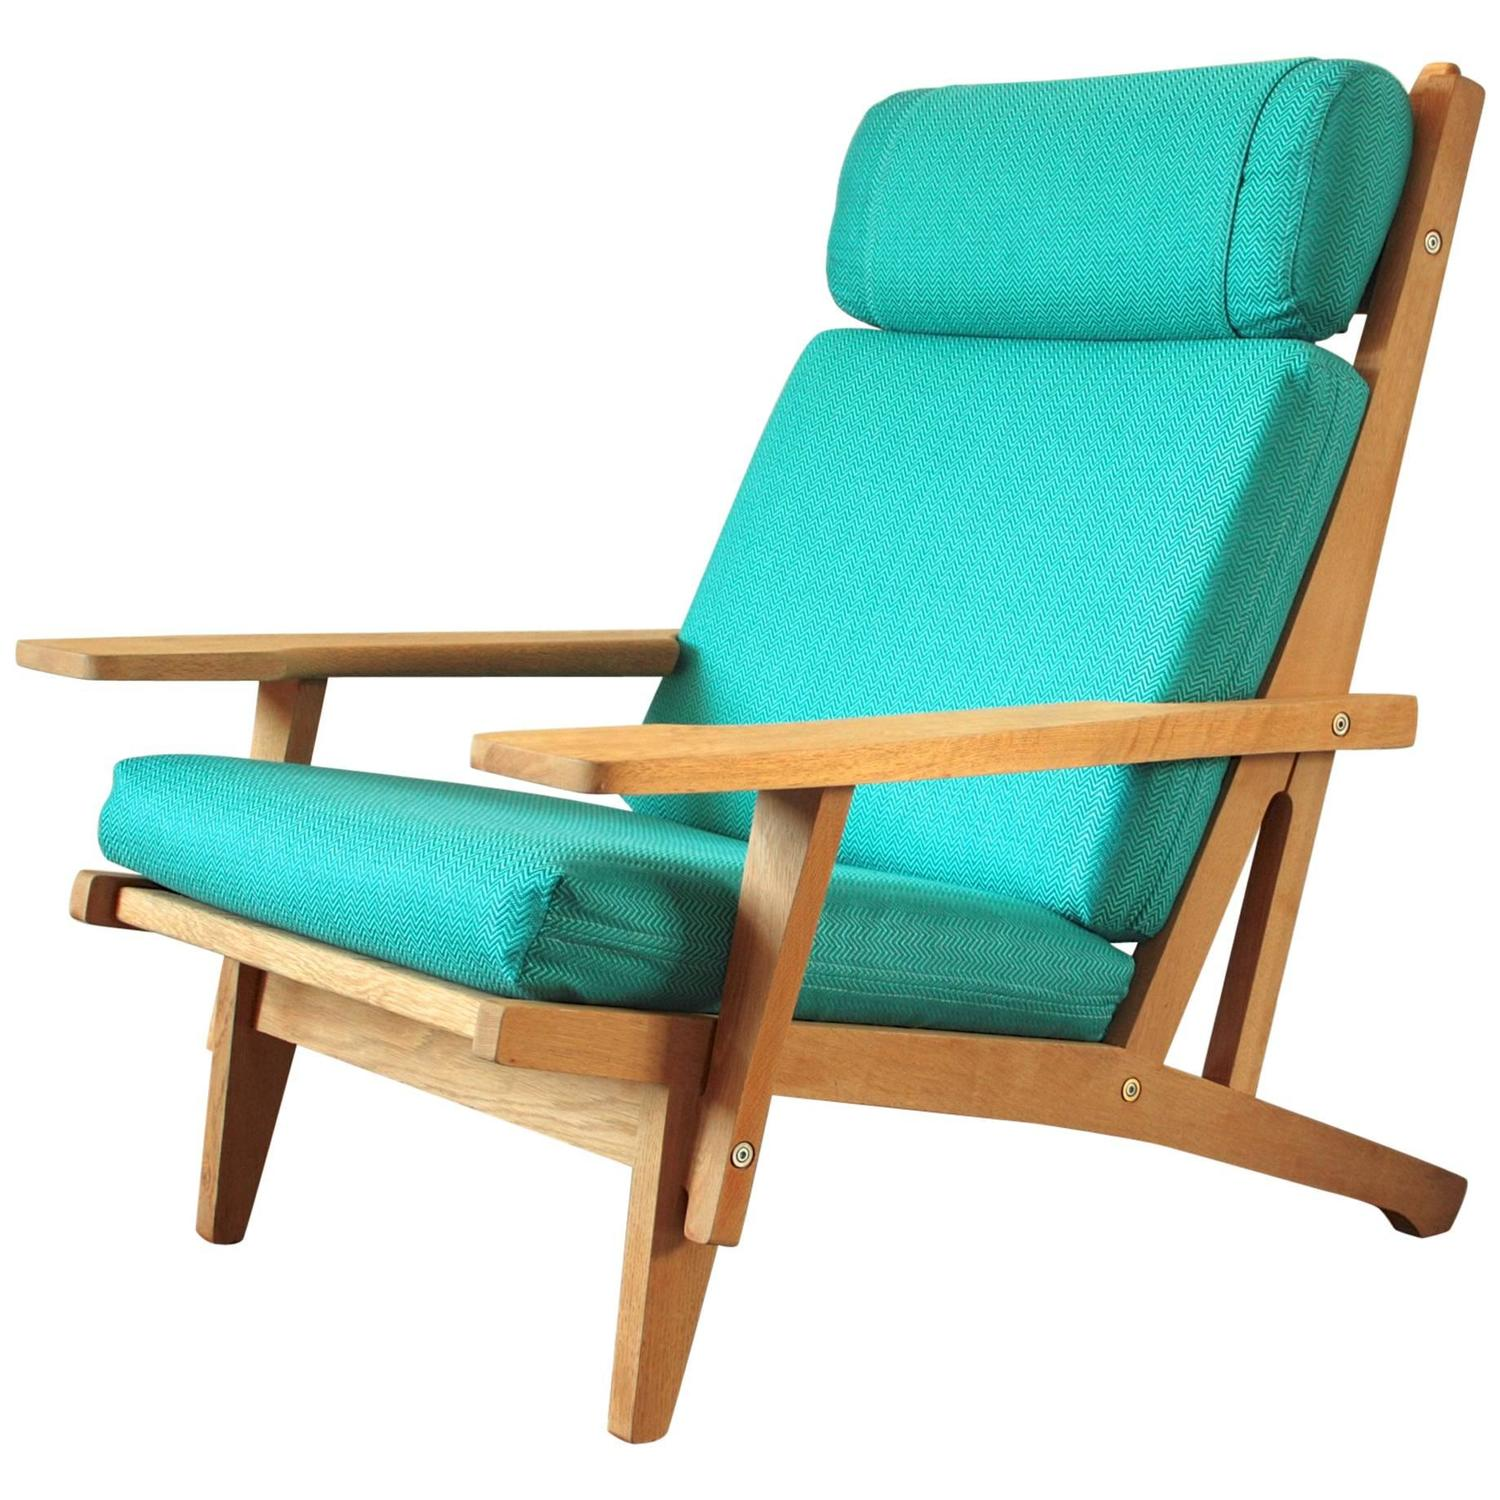 GE 375 Easy Chair by Hans J Wegner for GETAMA For Sale at 1stdibs